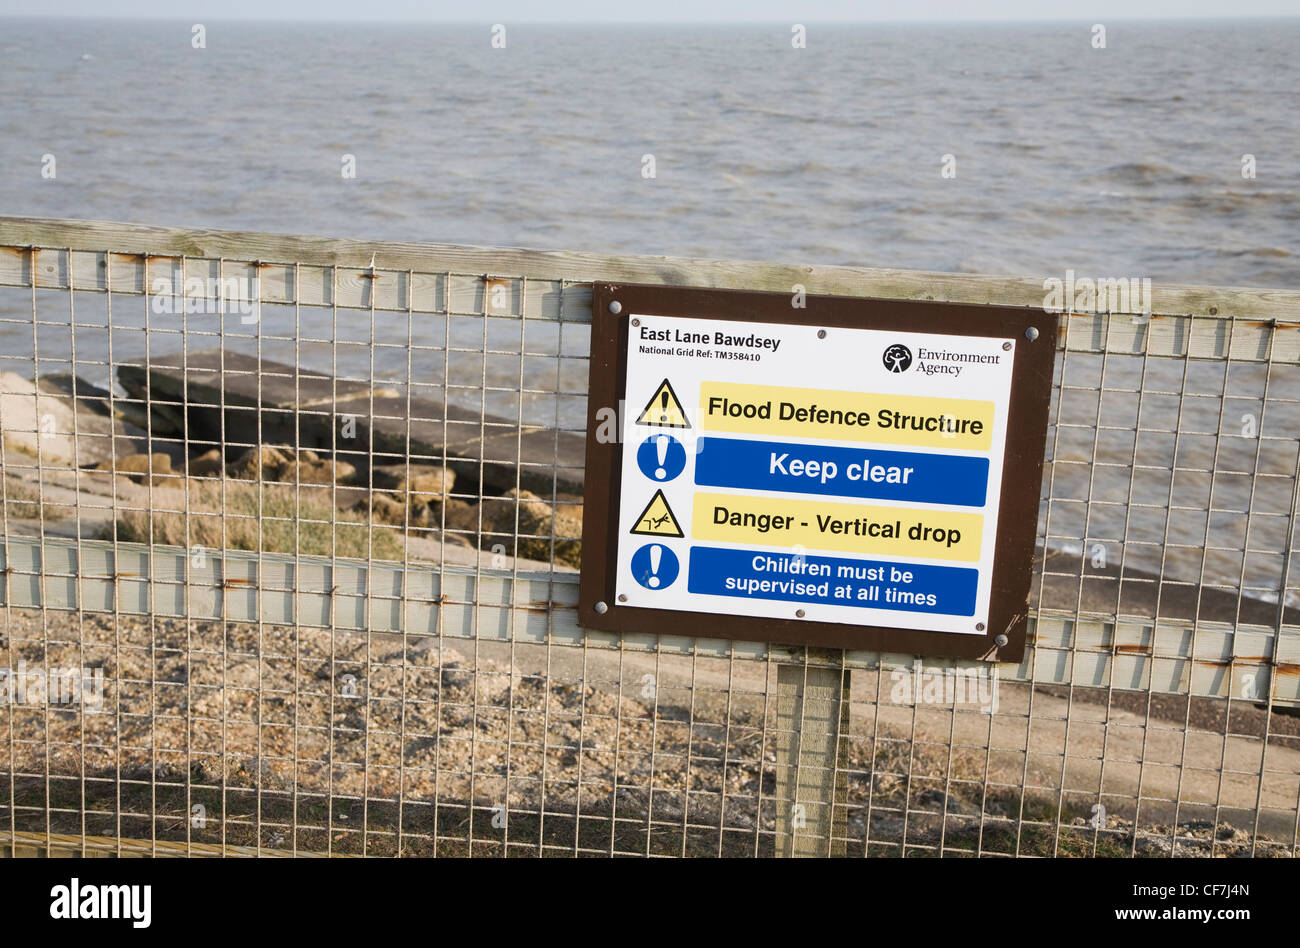 Flood Defence Environment Agency Keep Out sign, East Lane, Bawdsey, Suffolk, England - Stock Image